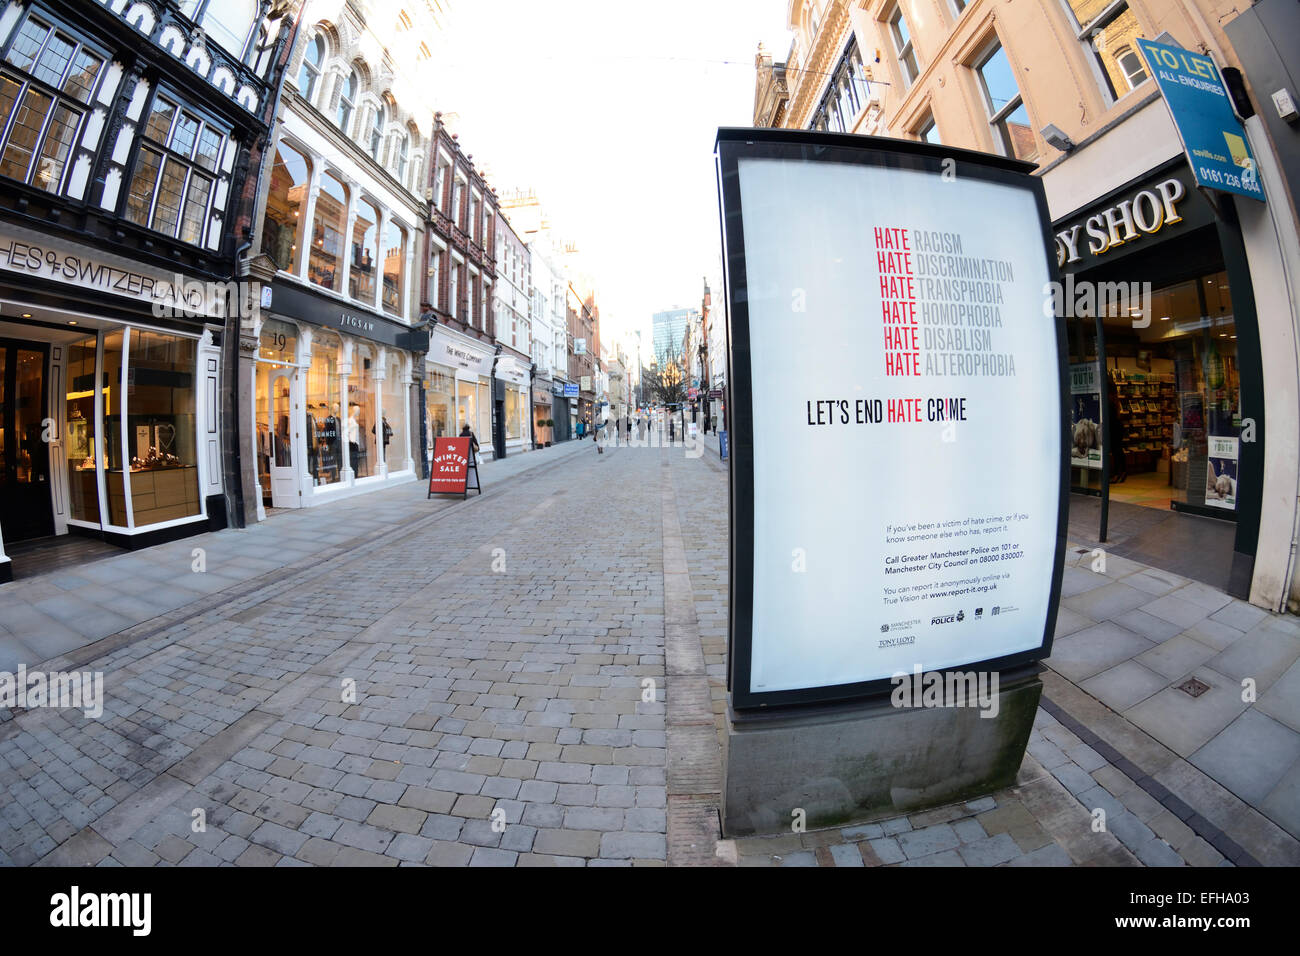 Illuminated sign against 'hate rimes' in King Street, Manchester. - Stock Image